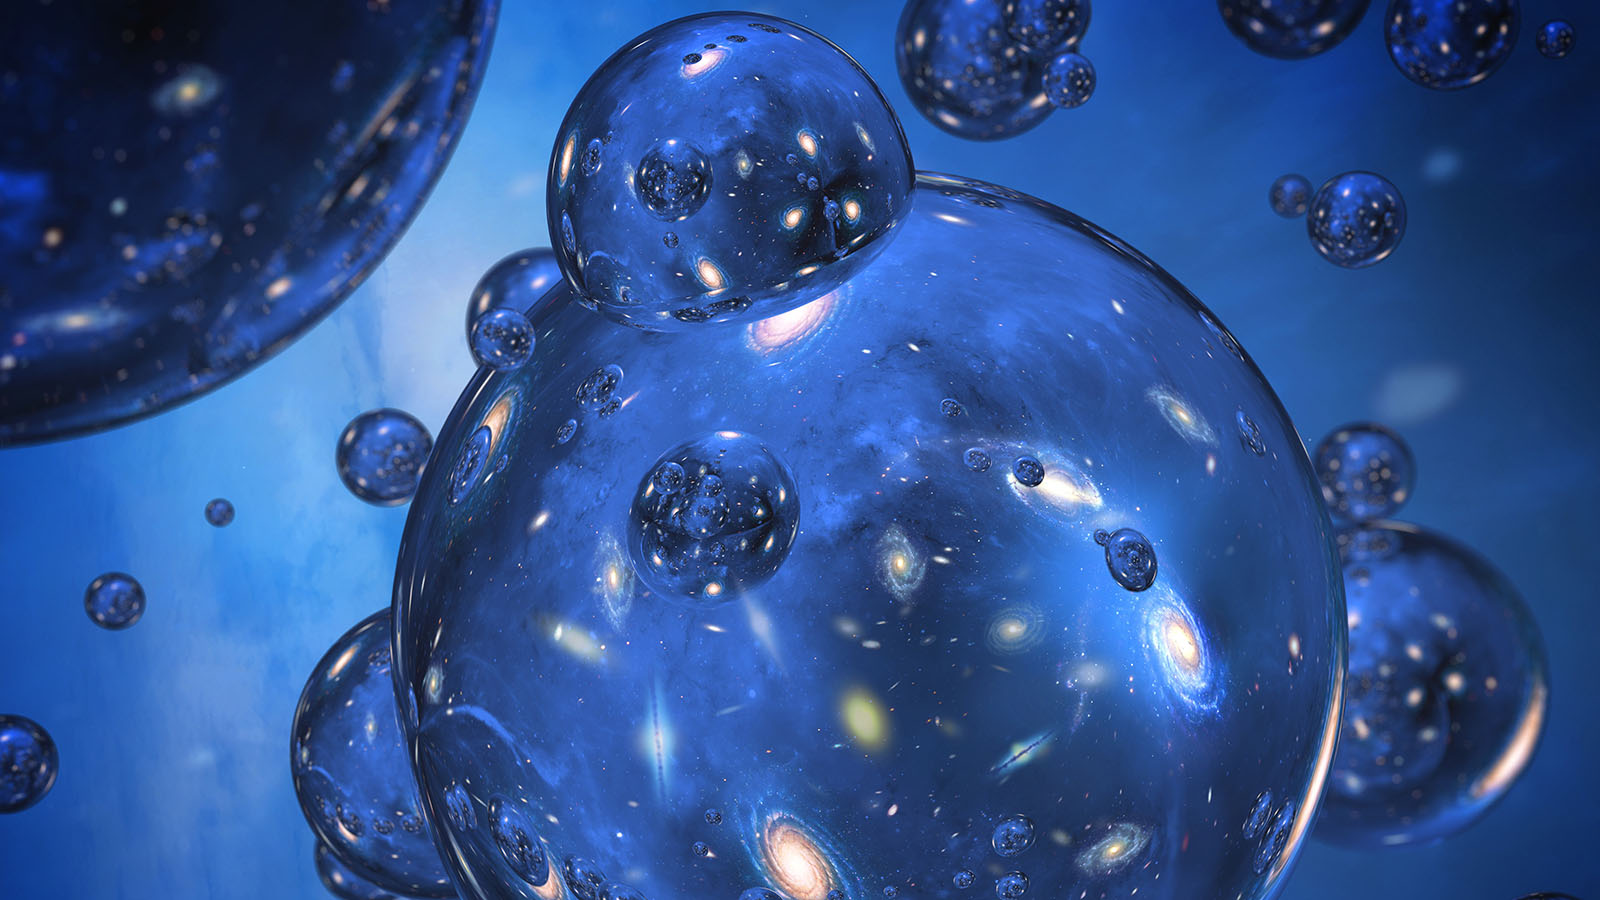 Stephen Hawking's Last Paper Takes on the Multiverse